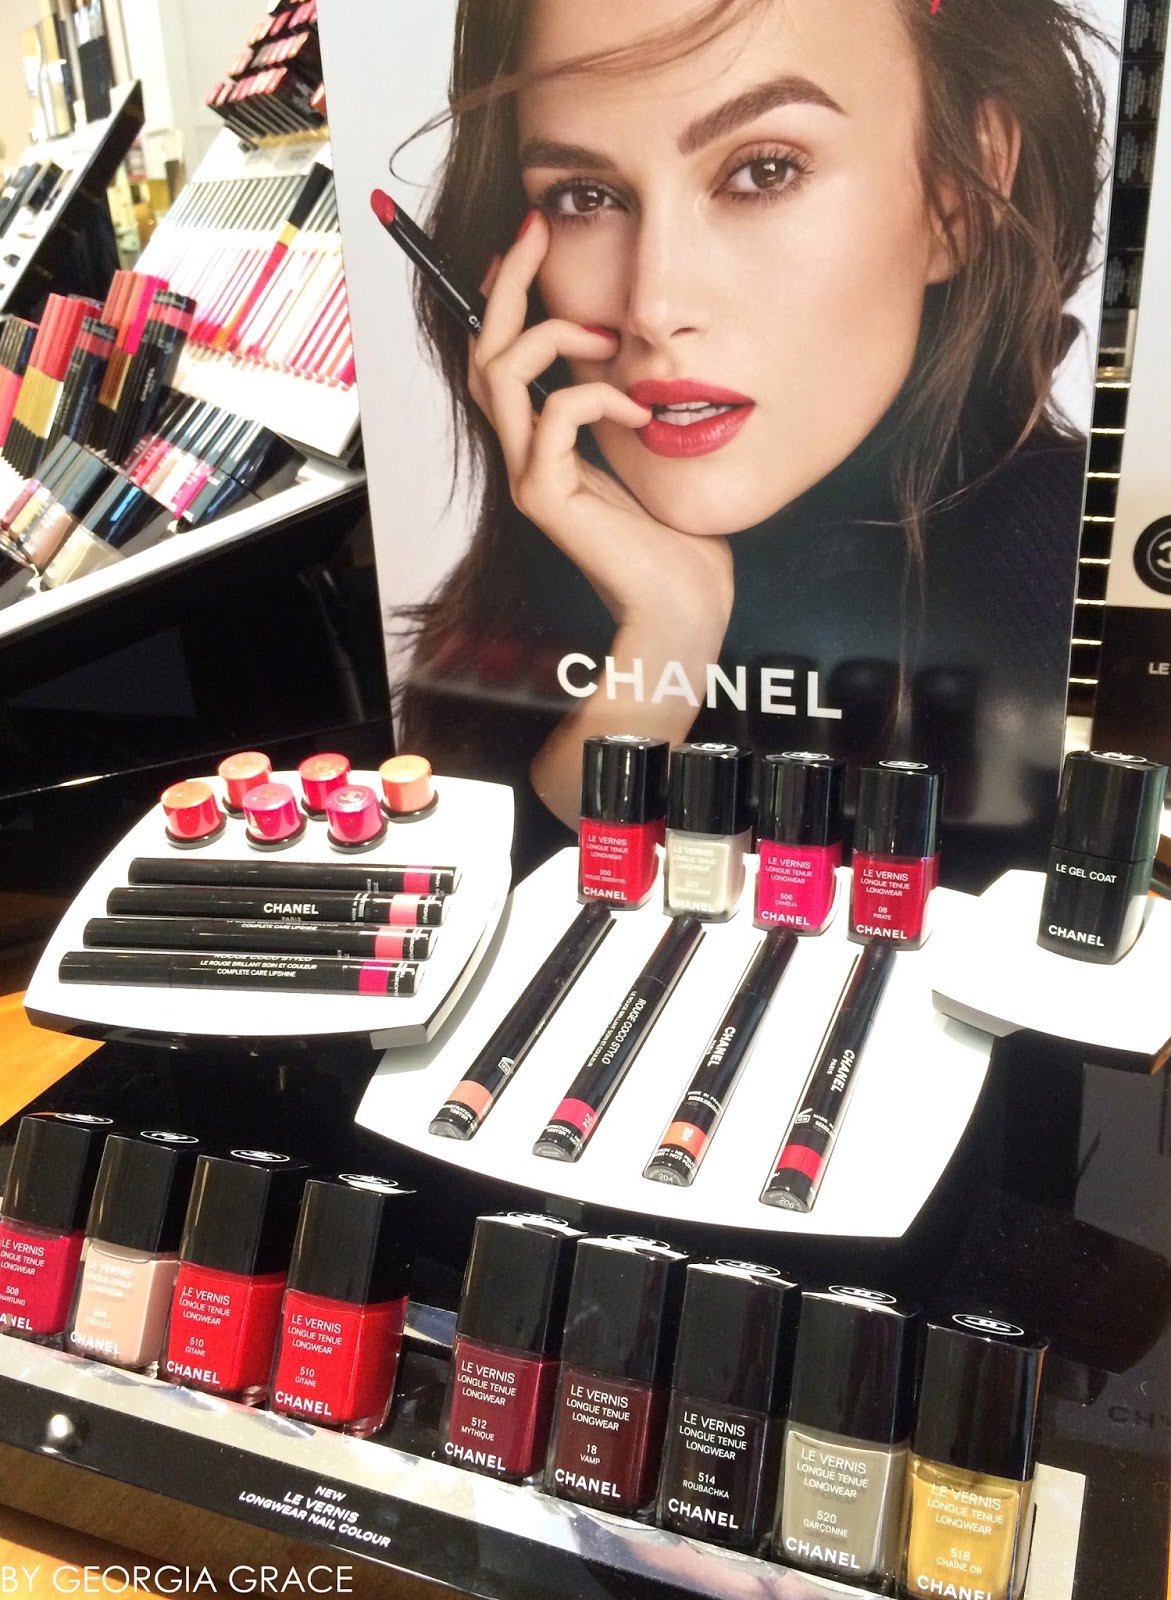 chanel new le vernis longwear nail polish swatches & review